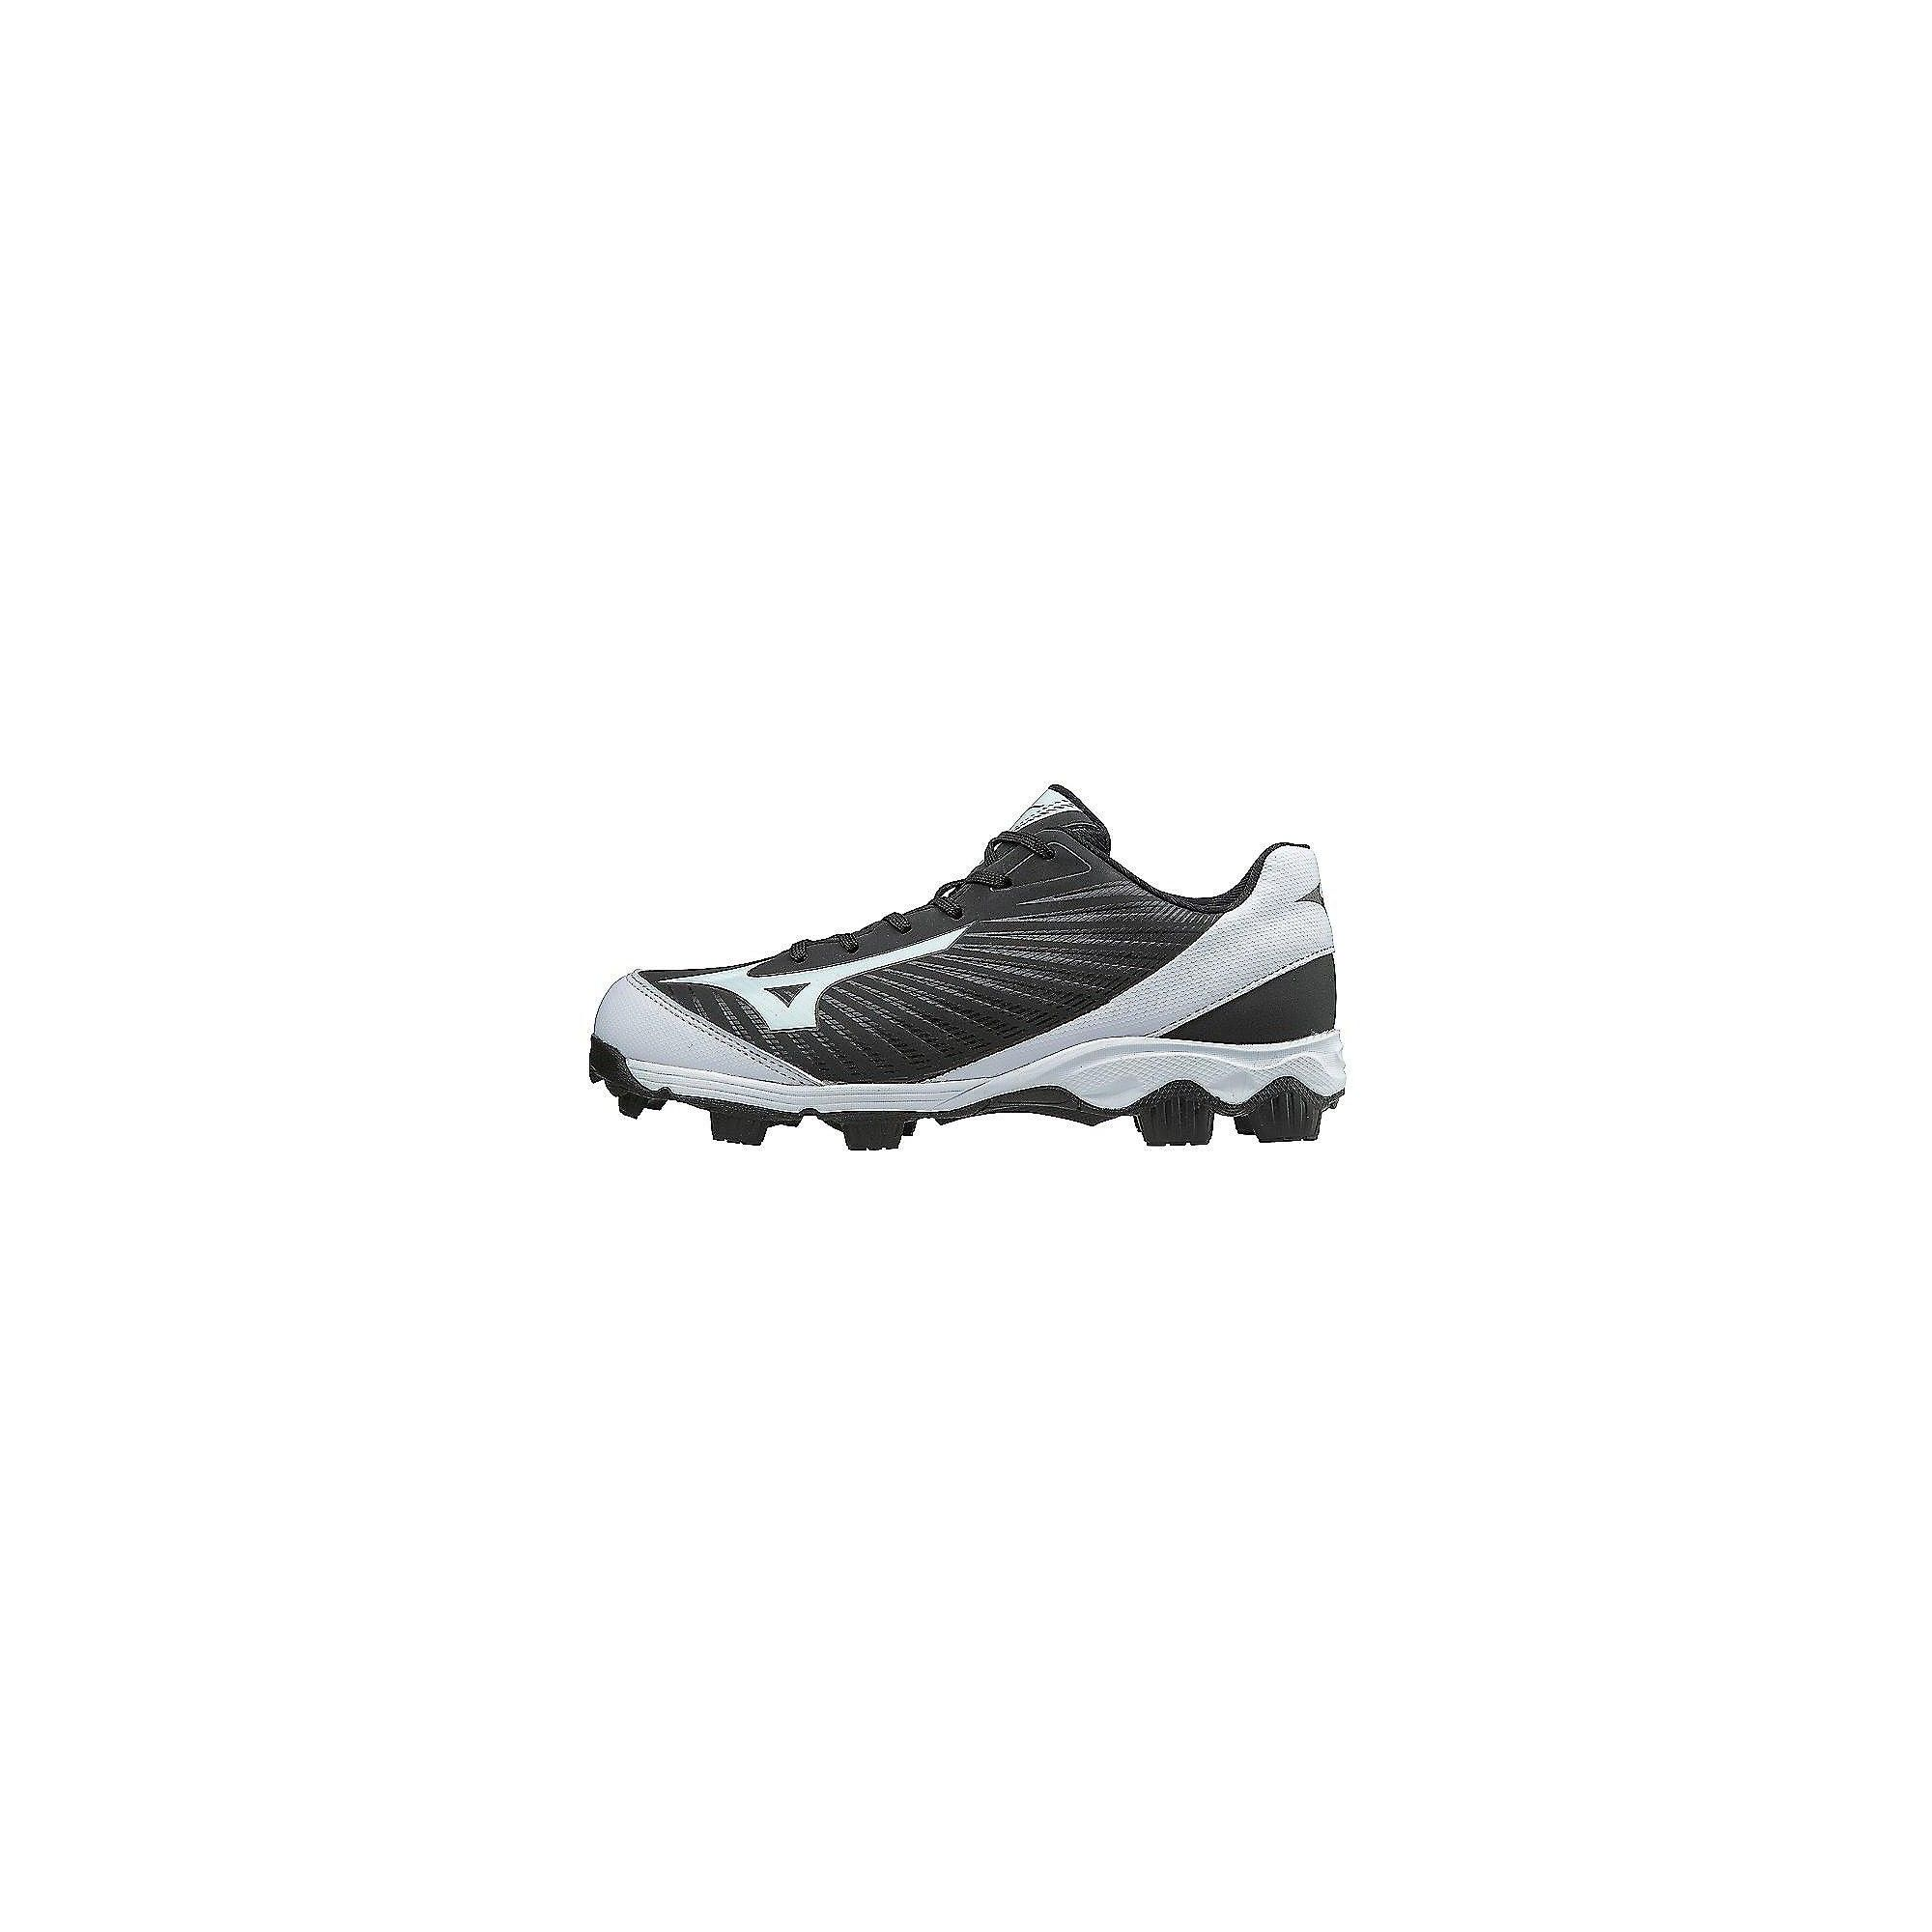 fdbd4dee5 Mizuno 9-Spike Advanced Finch Franchise 7 Womens Molded Softball Cleat,  Size 6.5 In Color Black-White (9000)